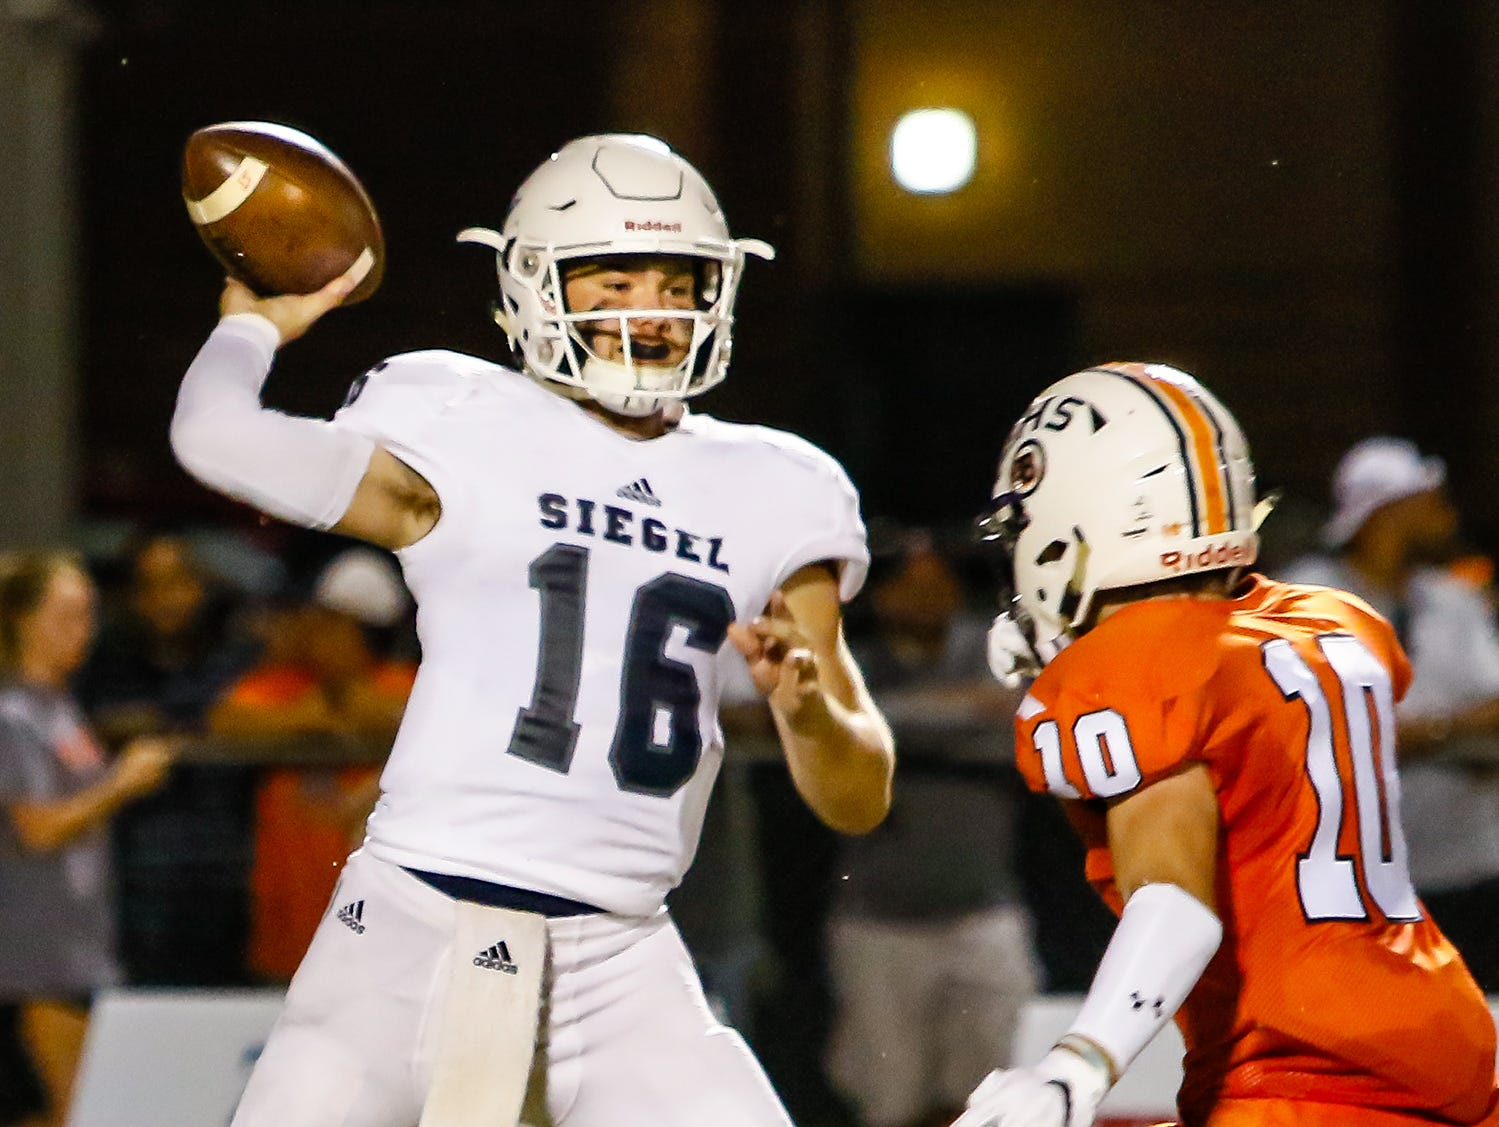 Siegel quarterback Tucker Sears release the ball just before being hit by Blackman's Matthew Hall.